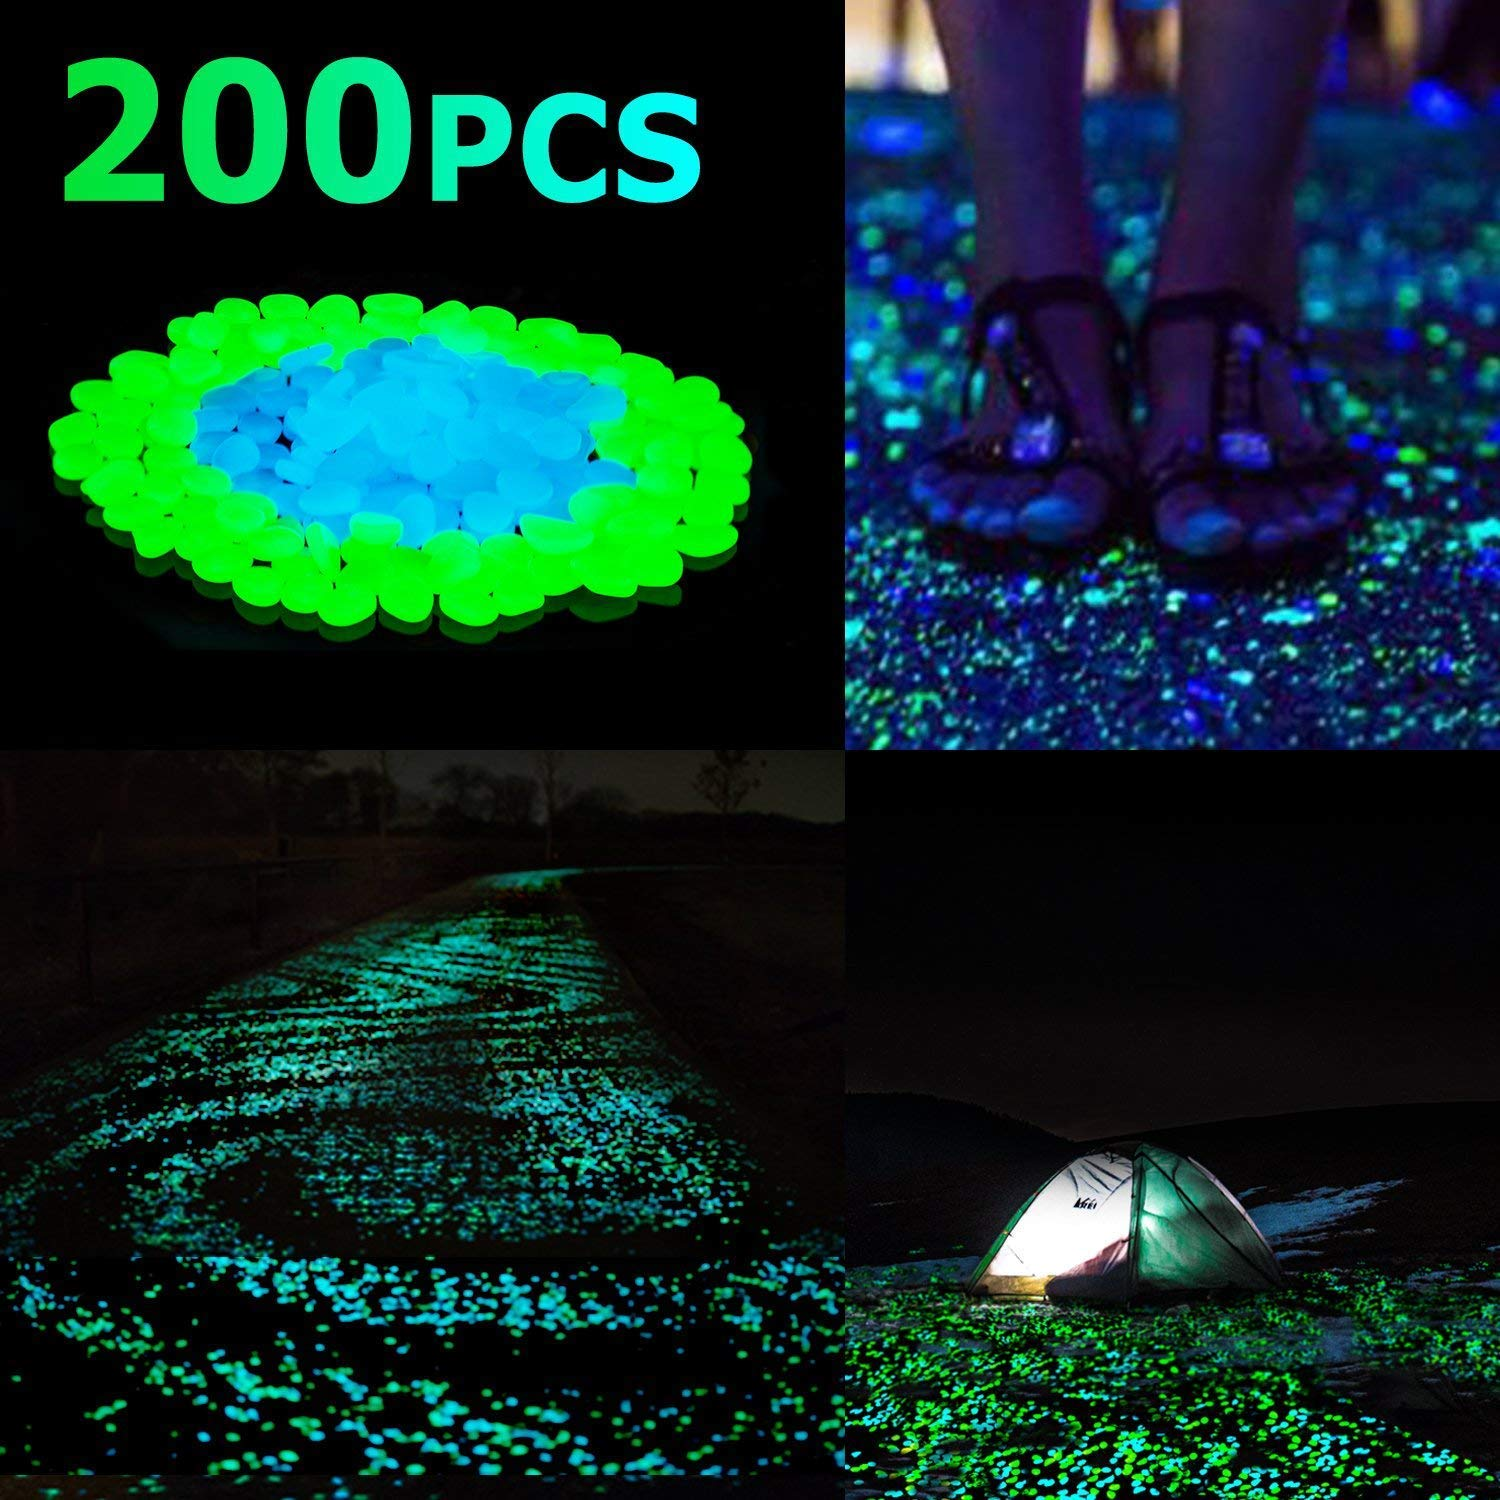 Glow in the Dark Pebbles, Glow in the Dark Rocks for Outdoor Fairy Garden, Glowing Stones Decoration Gravel for Driveway, Fish Tank, Aquarium, Path, Lawn, Yard (200PCS) by WeHome